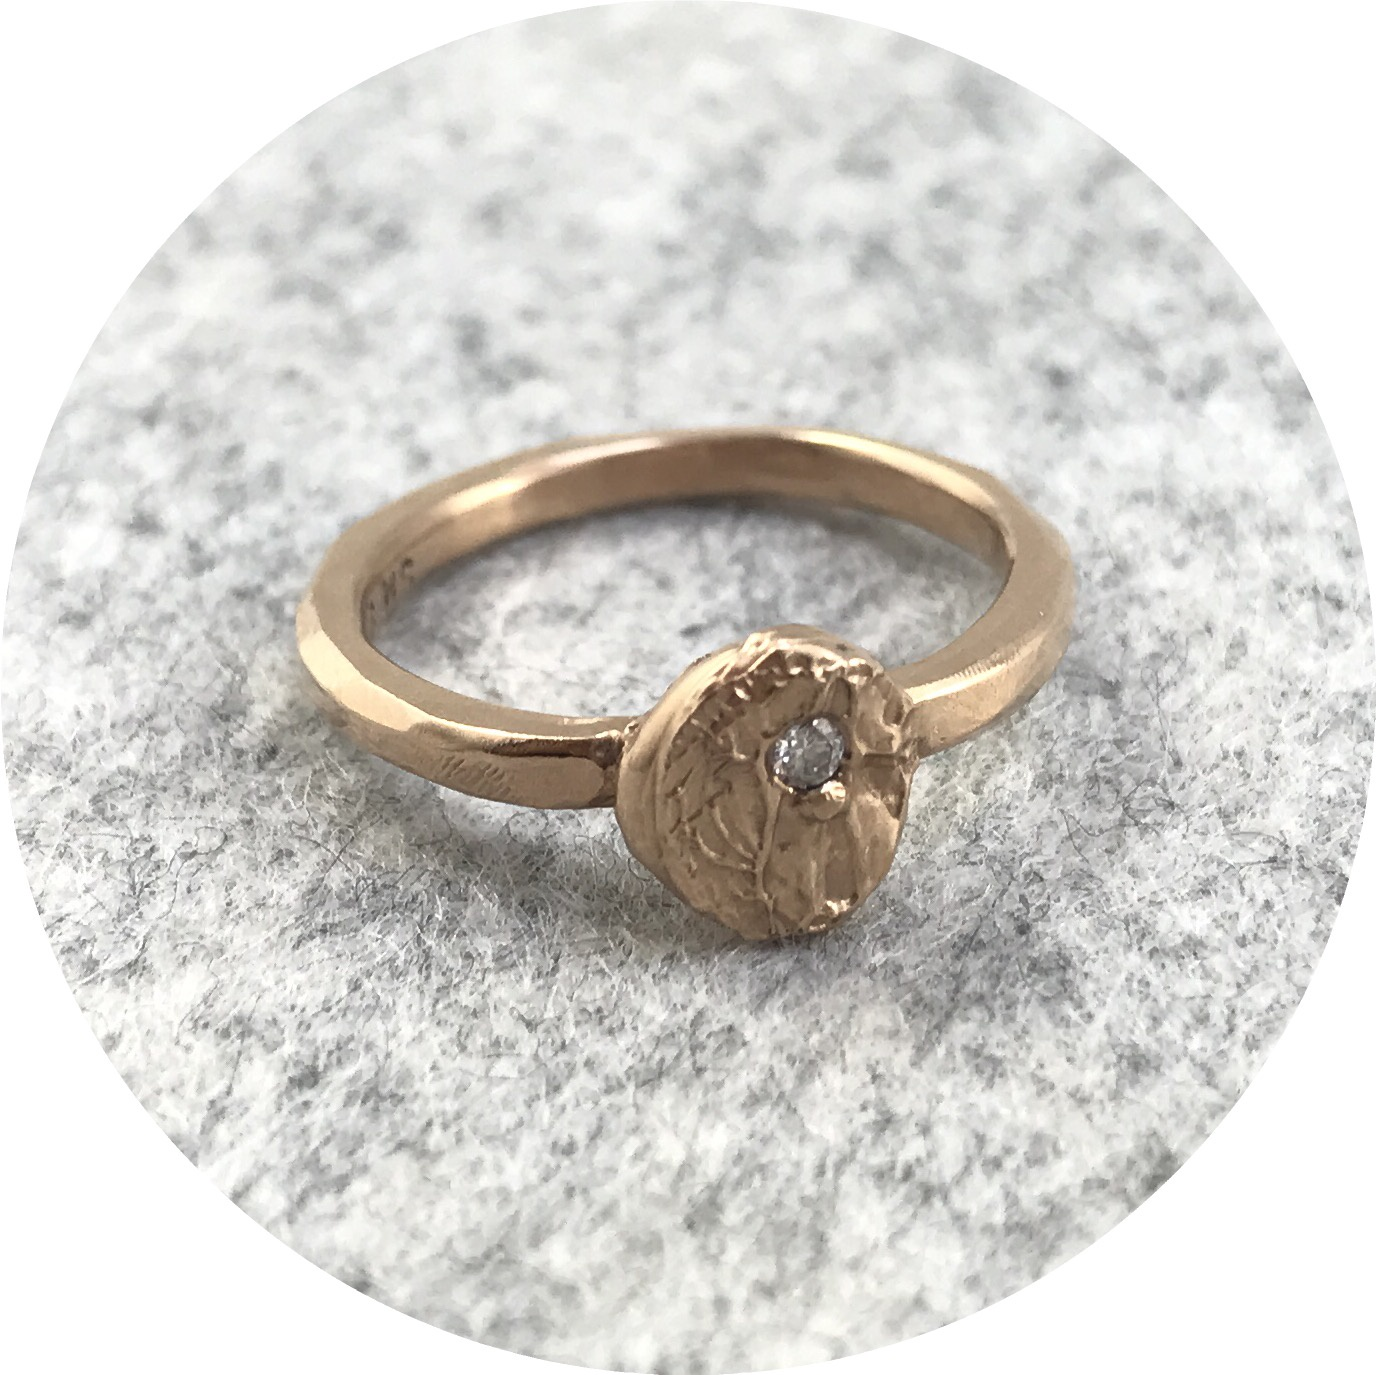 Susan McGinness - 'Impression' Ring in 9ct Rose Gold Ring with a Diamond